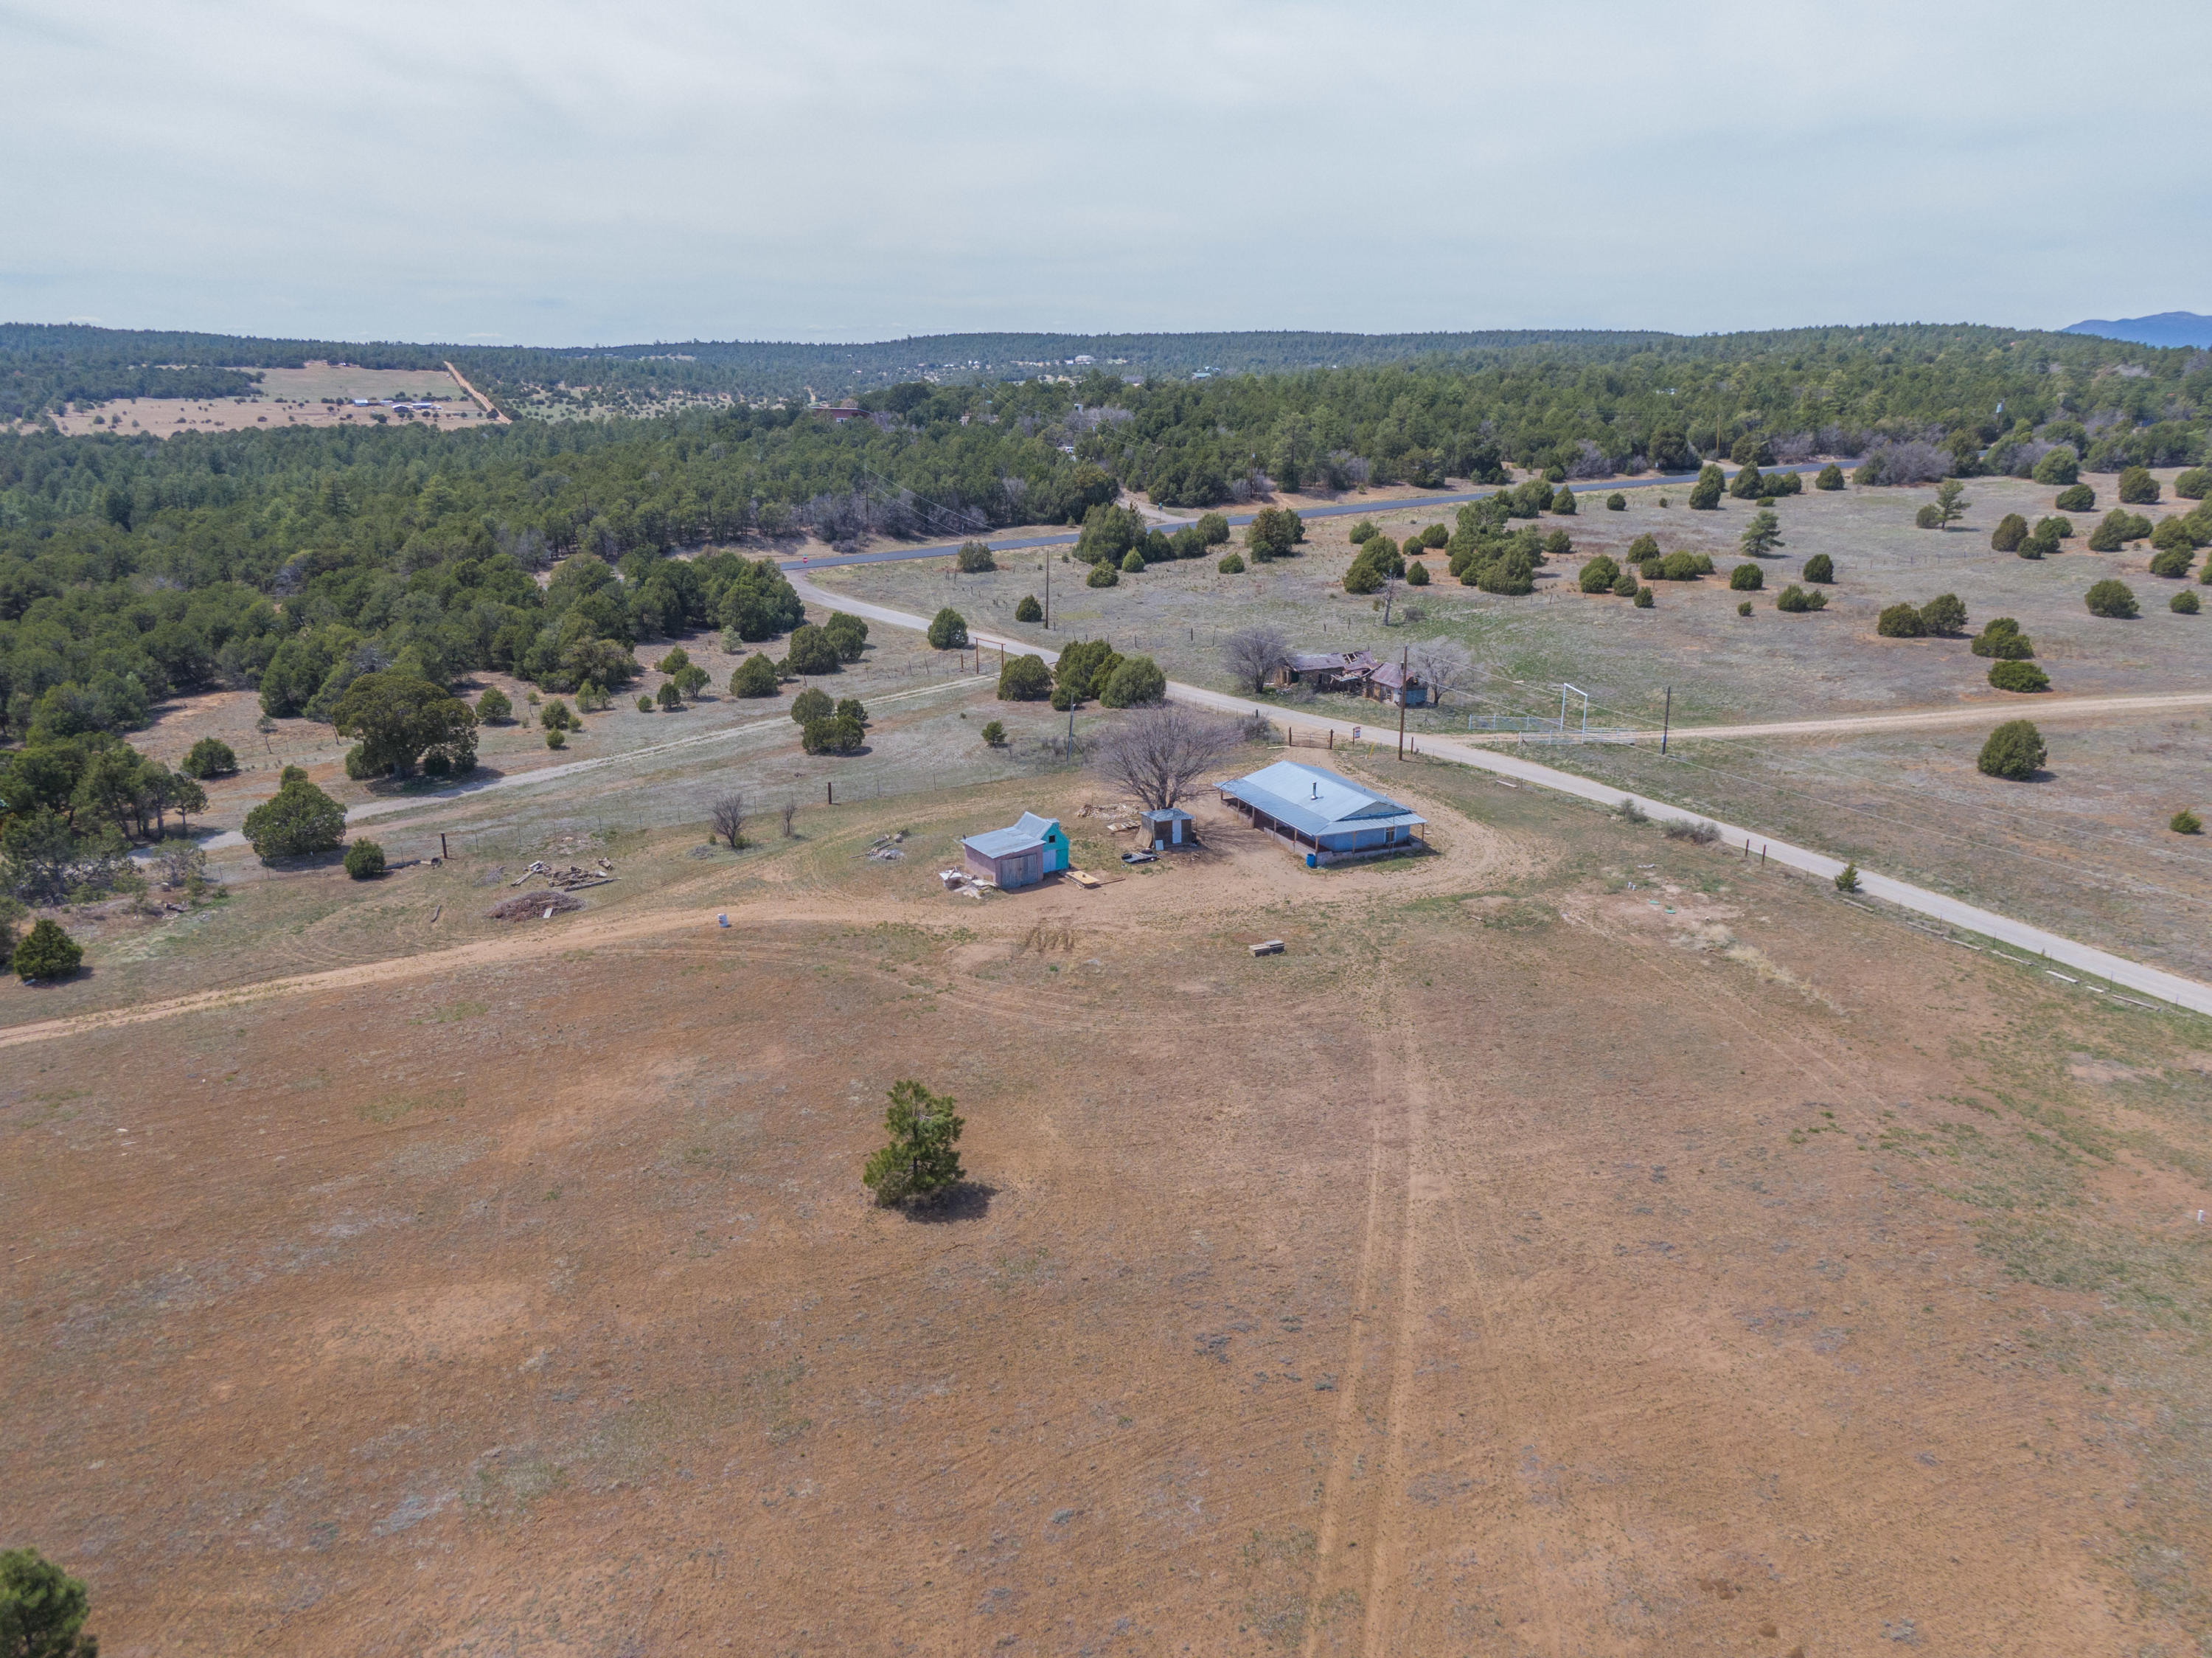 Build the mountain home of your dreams on this fully fenced 8 acre property! 900sf foot home with 2 bedrooms located on the front of the property makes the perfect for those weekend getaways. 2 wells on the property! Storage sheds. Close to National forest trail system perfect for hikers and bikers!